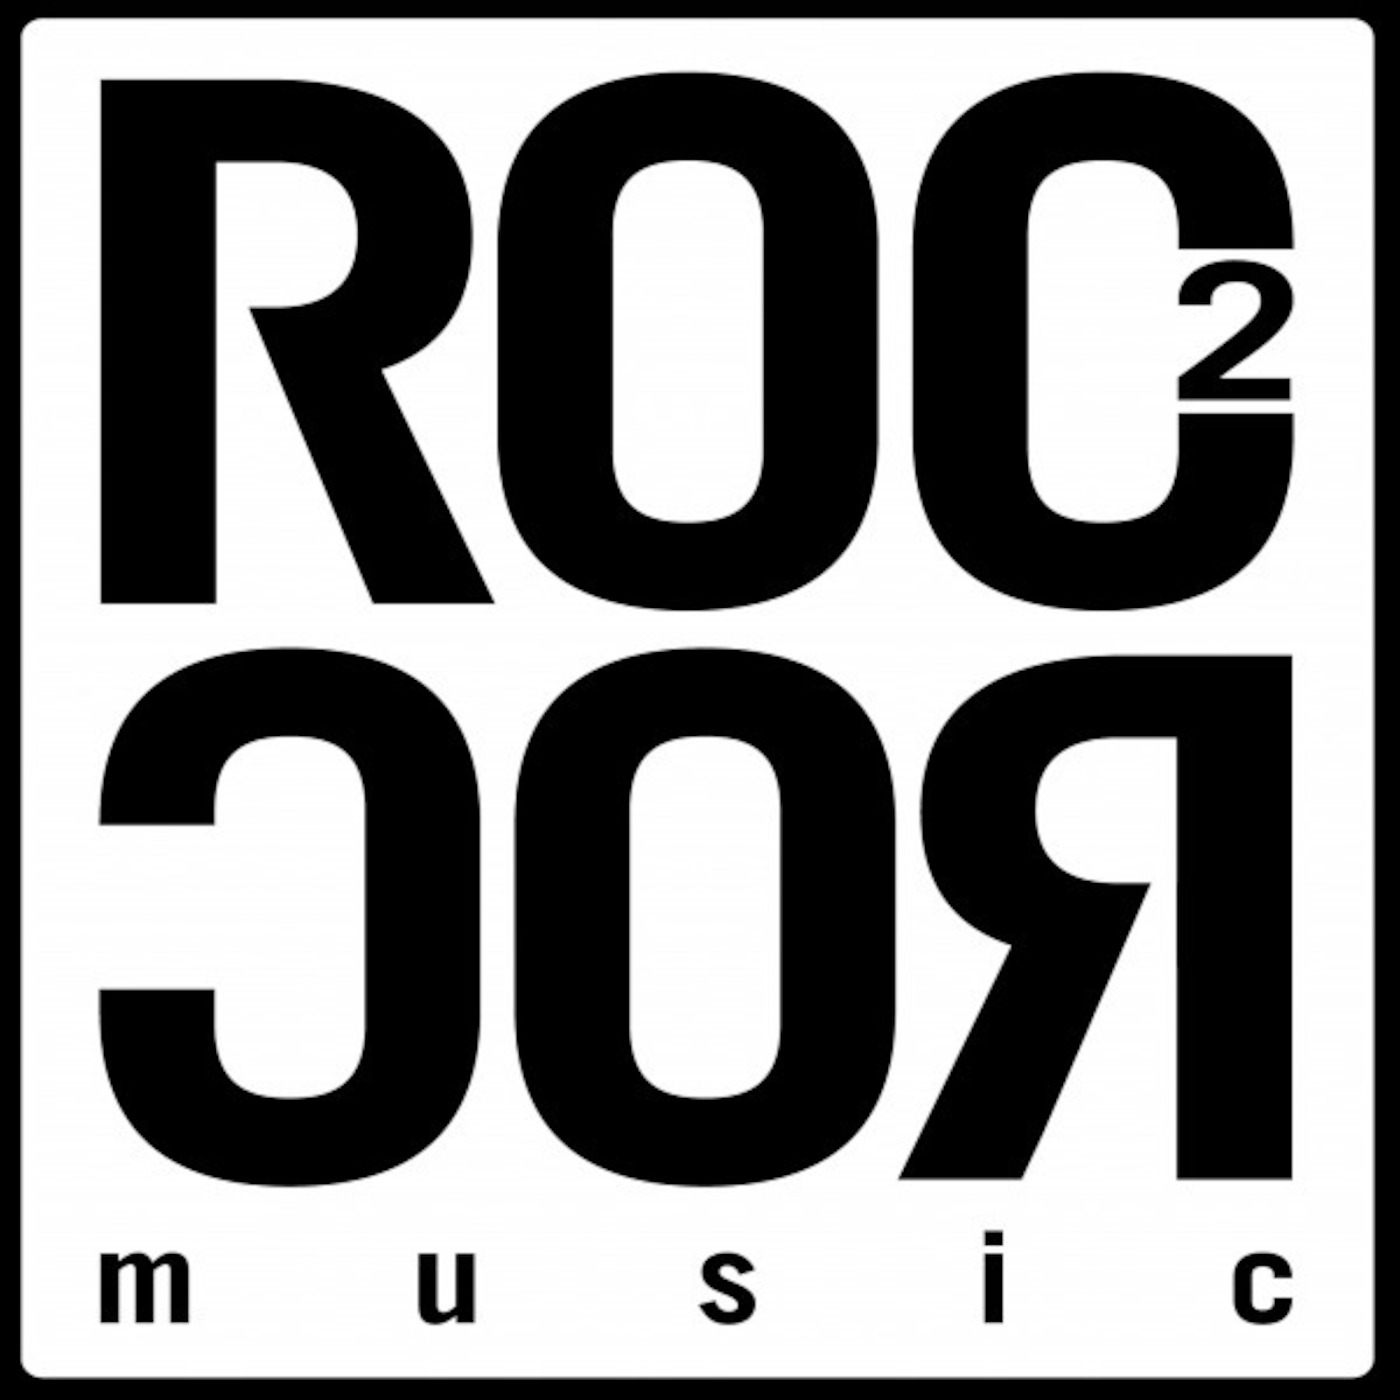 ROC2ROC MUSIC RADIO ® (SOULFUL HOUSE)